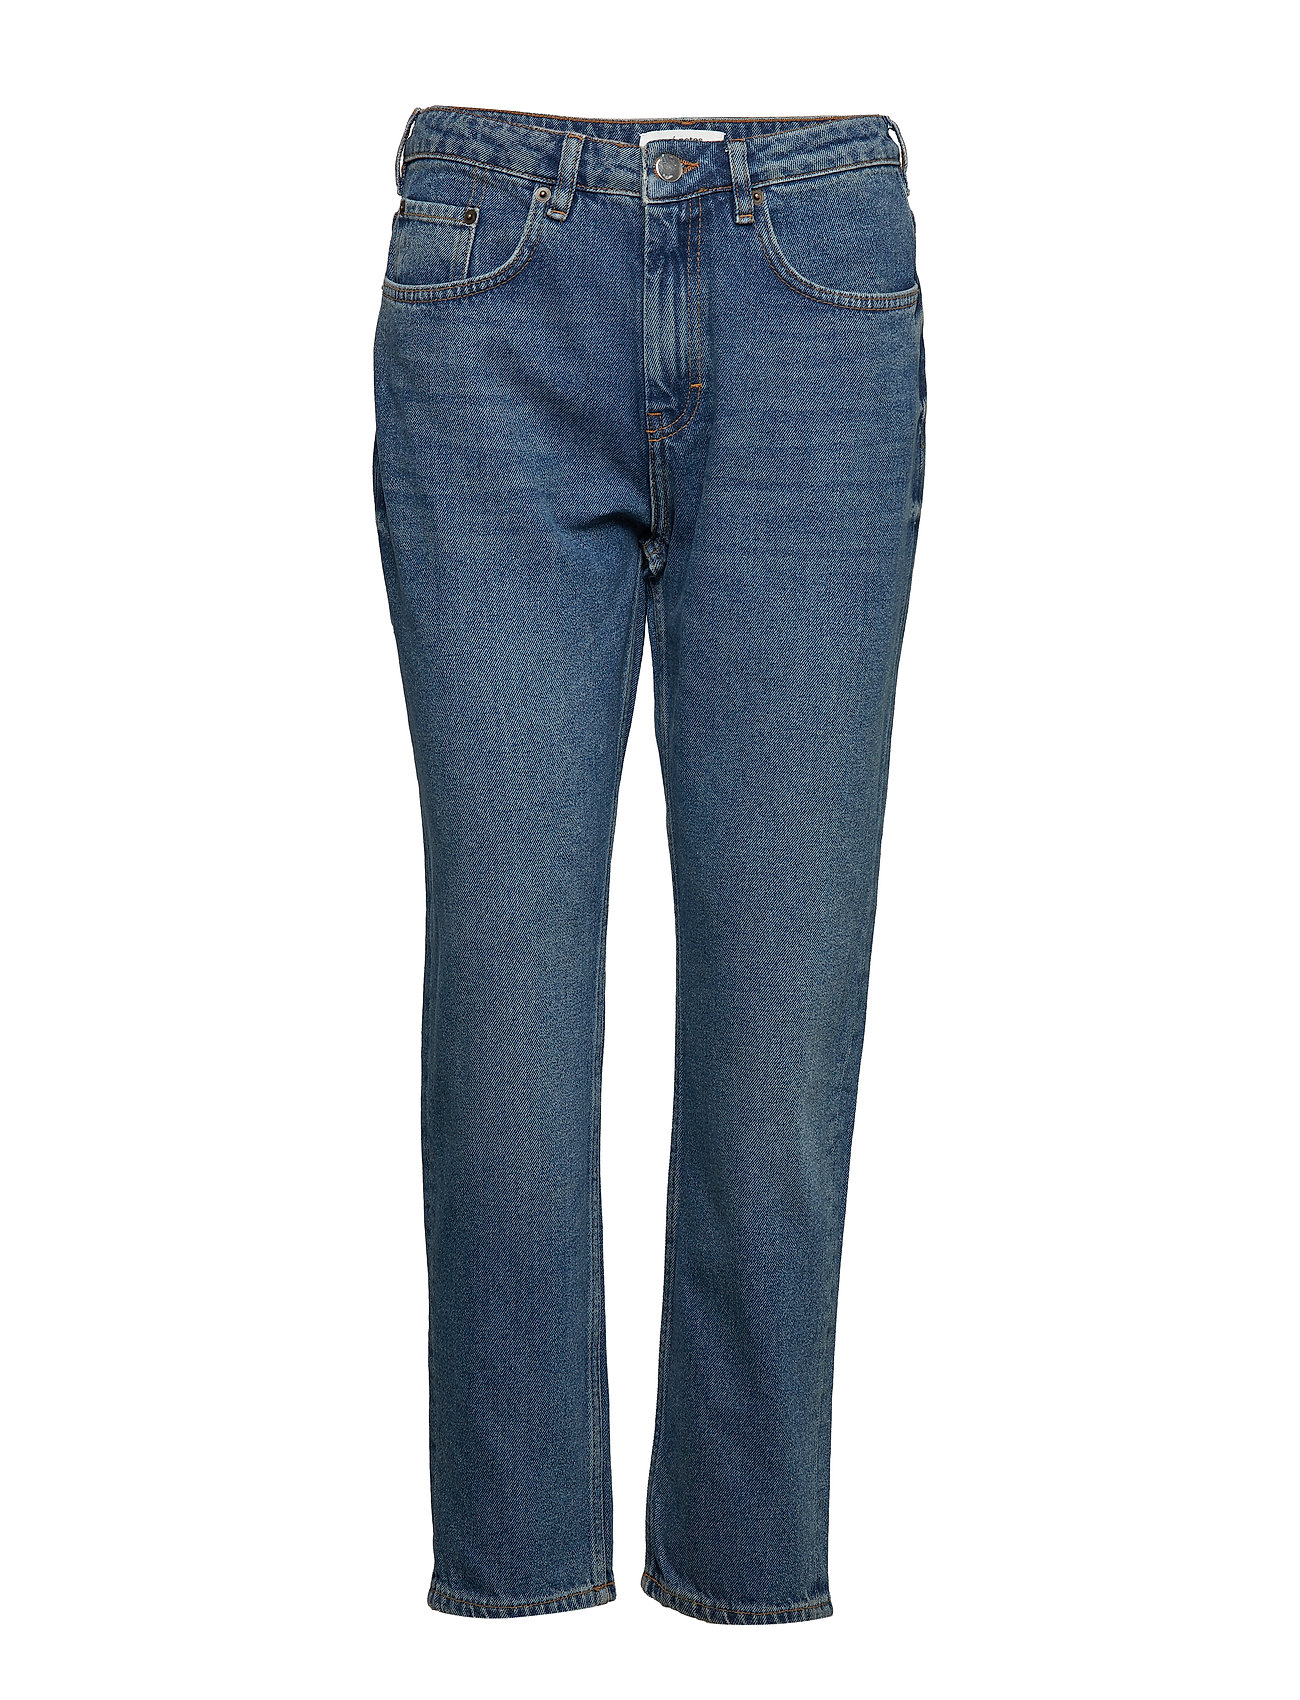 nué notes Stinna Jeans - HEAVY WASHED DENIM